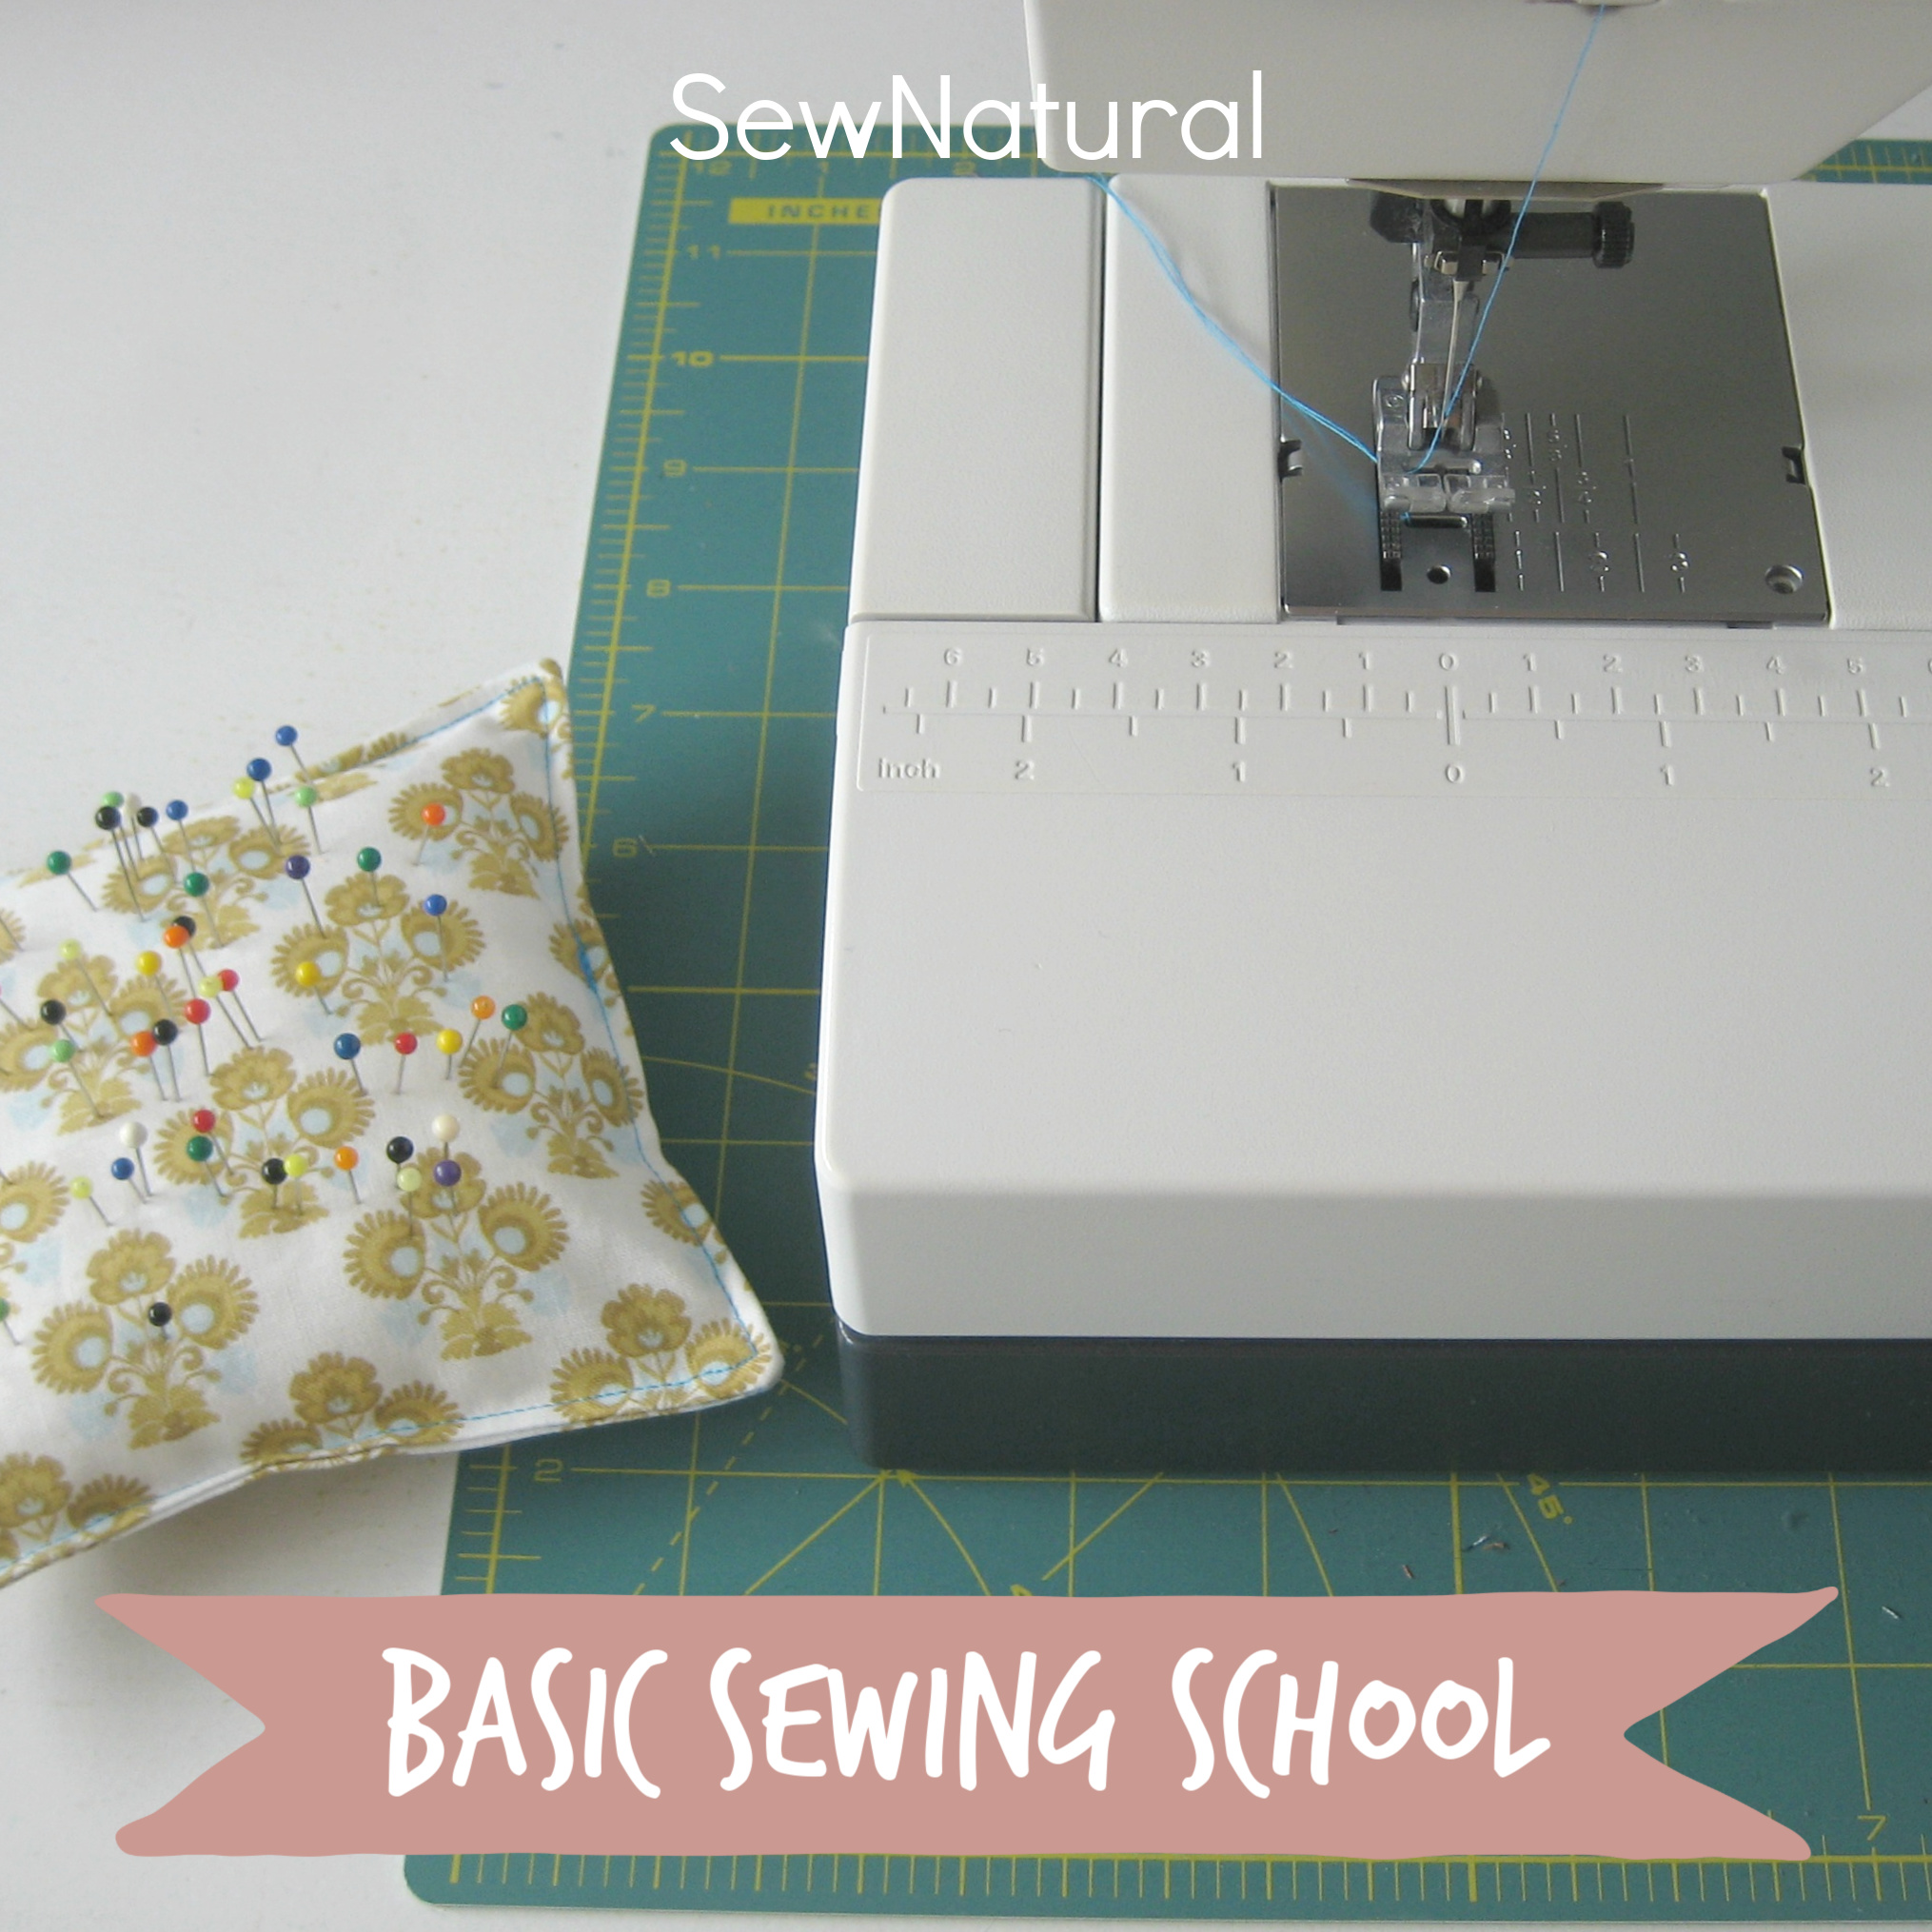 Basic Sewing School Button (1)